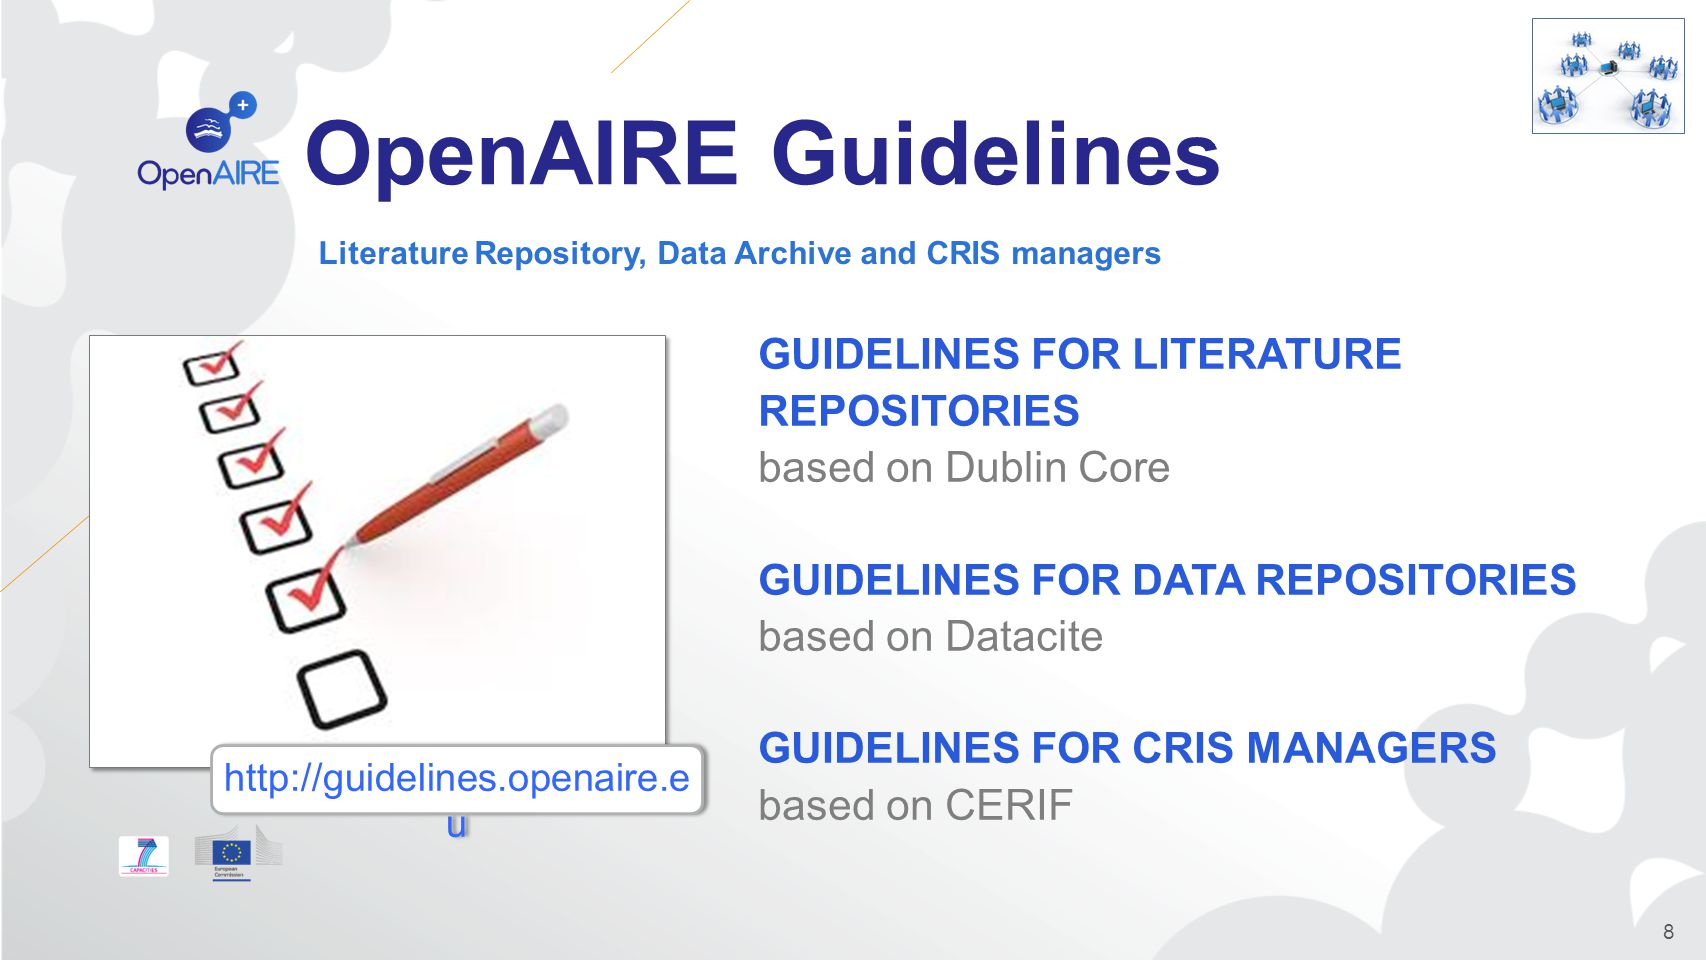 OpenAIRE Guidelines GUIDELINES FOR LITERATURE REPOSITORIES based on Dublin Core GUIDELINES FOR DATA REPOSITORIES based on Datacite GUIDELINES FOR CRIS MANAGERS based on CERIF Literature Repository, Data Archive and CRIS managers 8 http://guidelines.openaire.e u